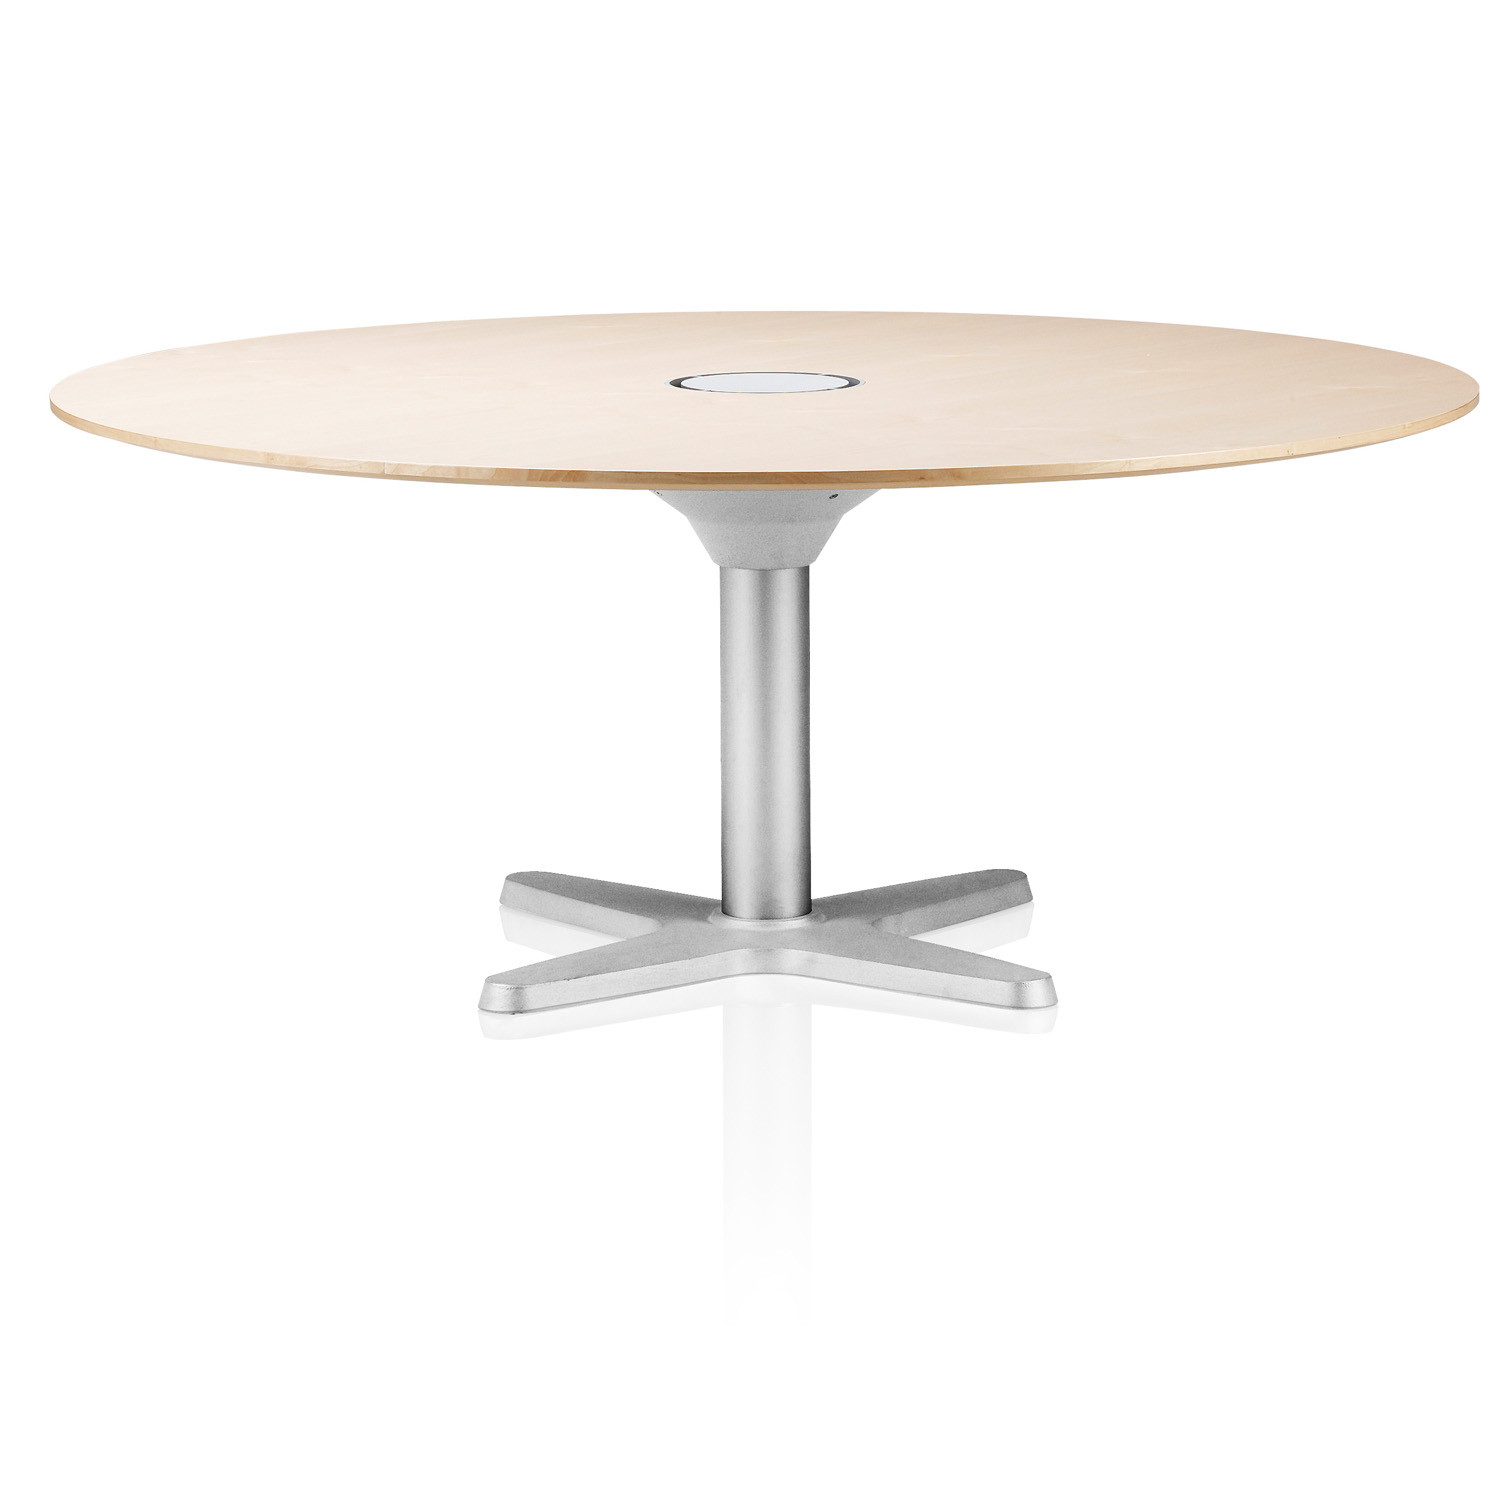 Atas round conference table